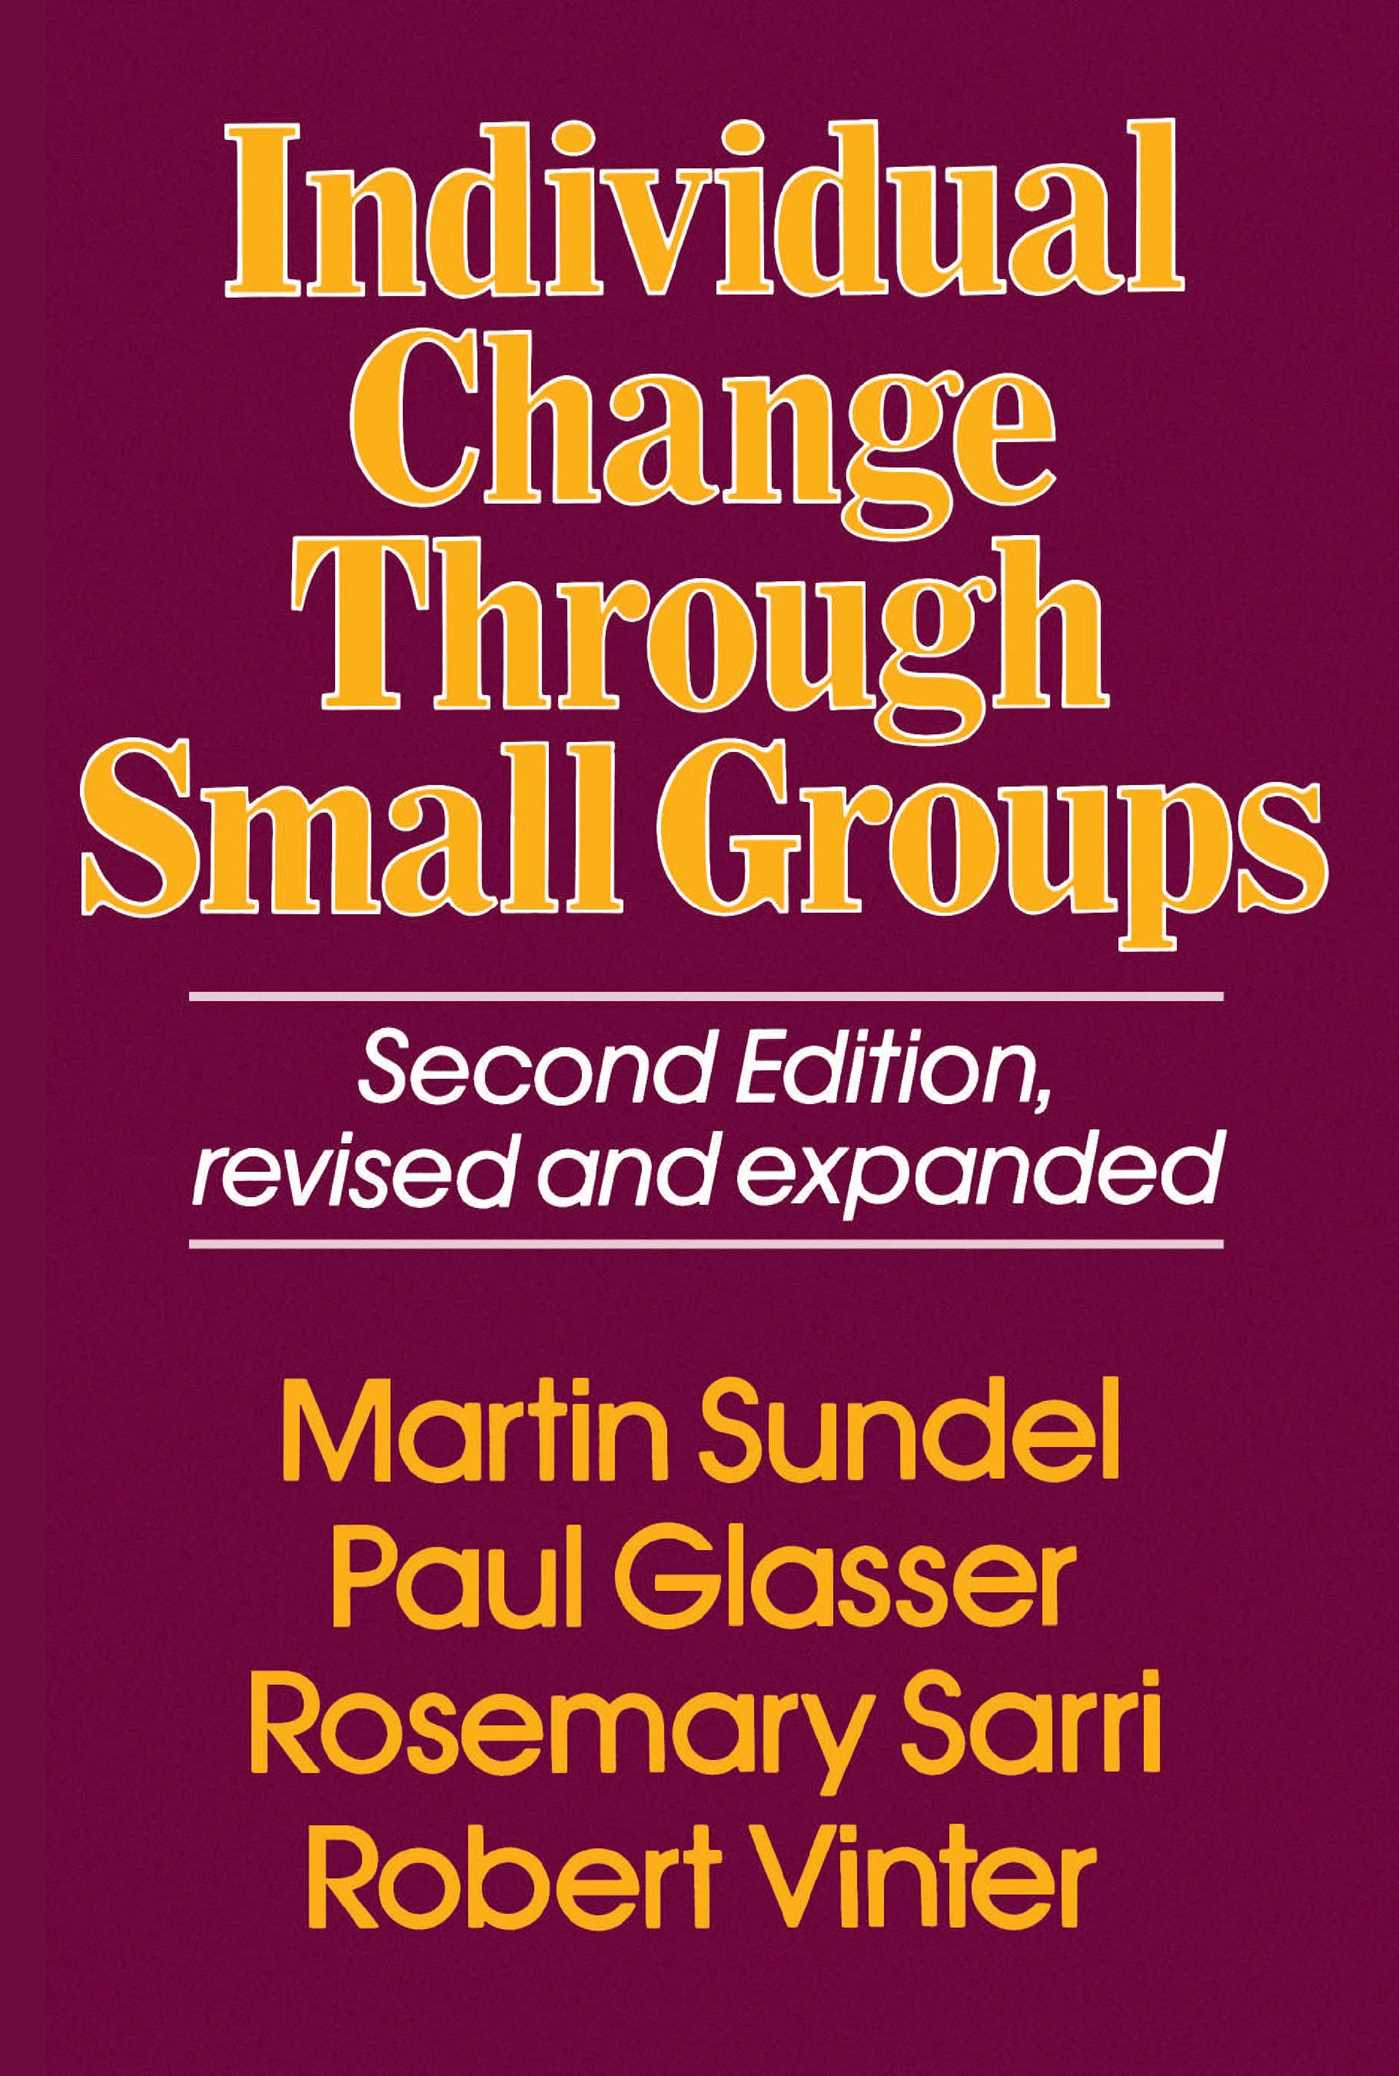 Individual-change-through-small-groups-2nd-ed-9780029117903_hr